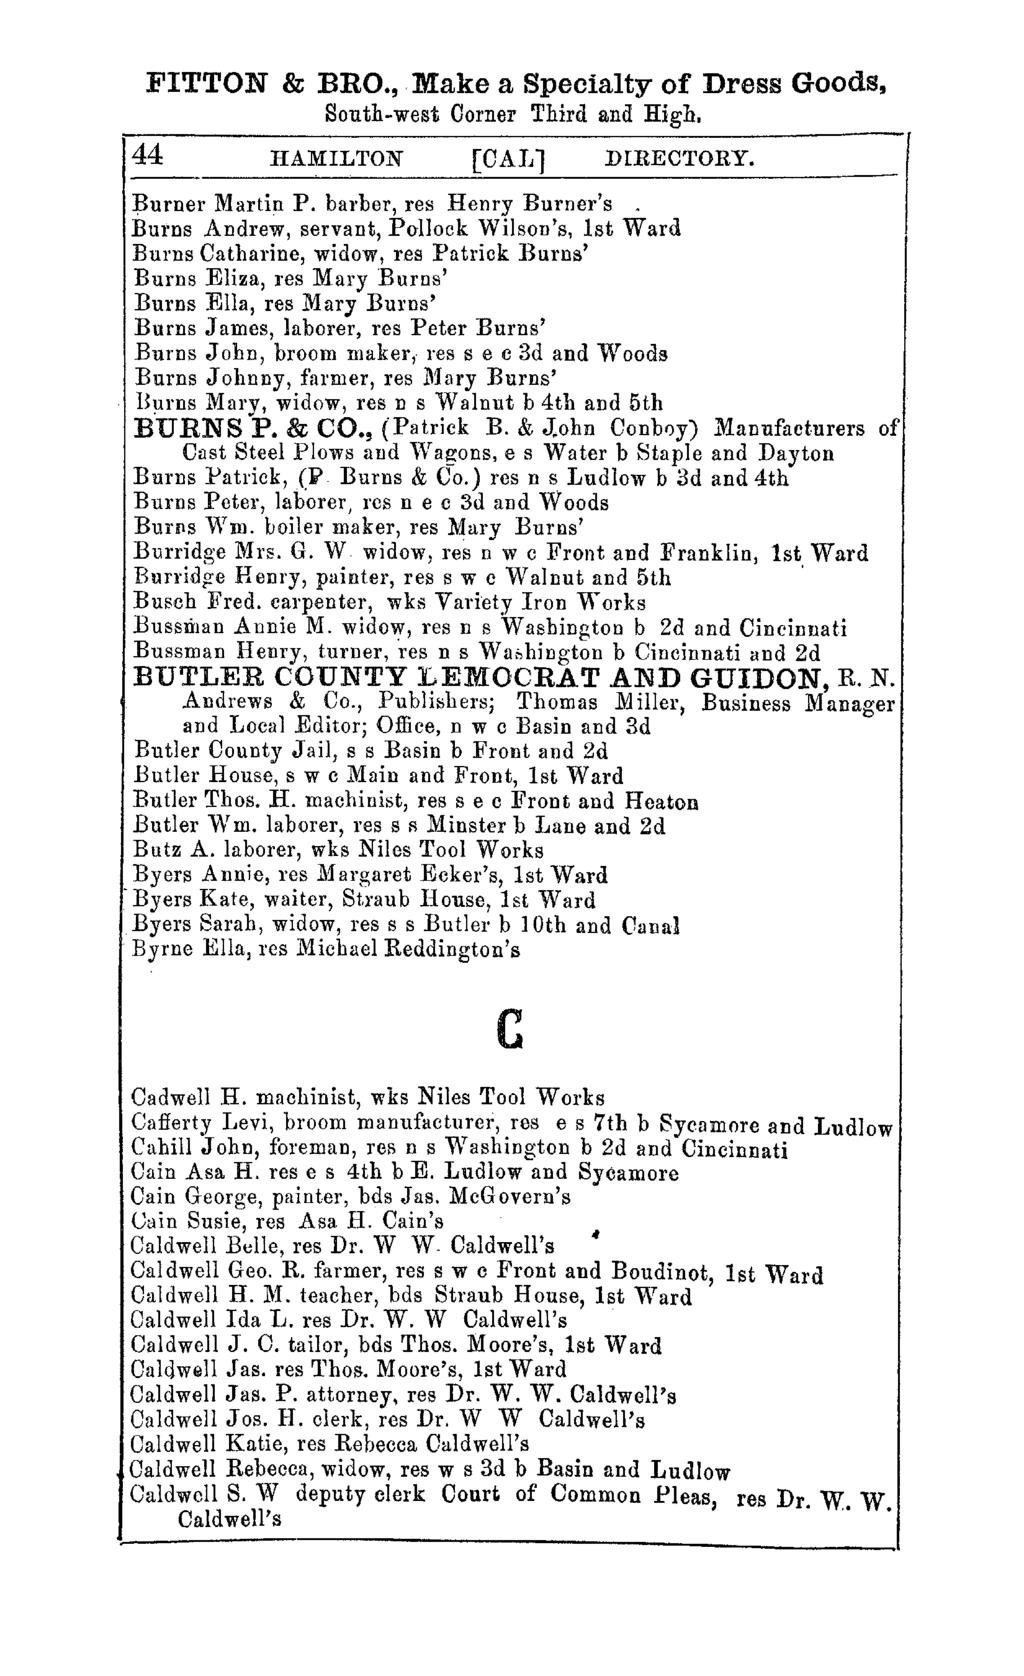 FITTON & BRO., Make a Specialty of Dress Goods, South-west Corner Third and High. 44 HAMILTON [CAI.Jl DIRECTORY. ~urner Martin P. barber, res Henry Burner's.